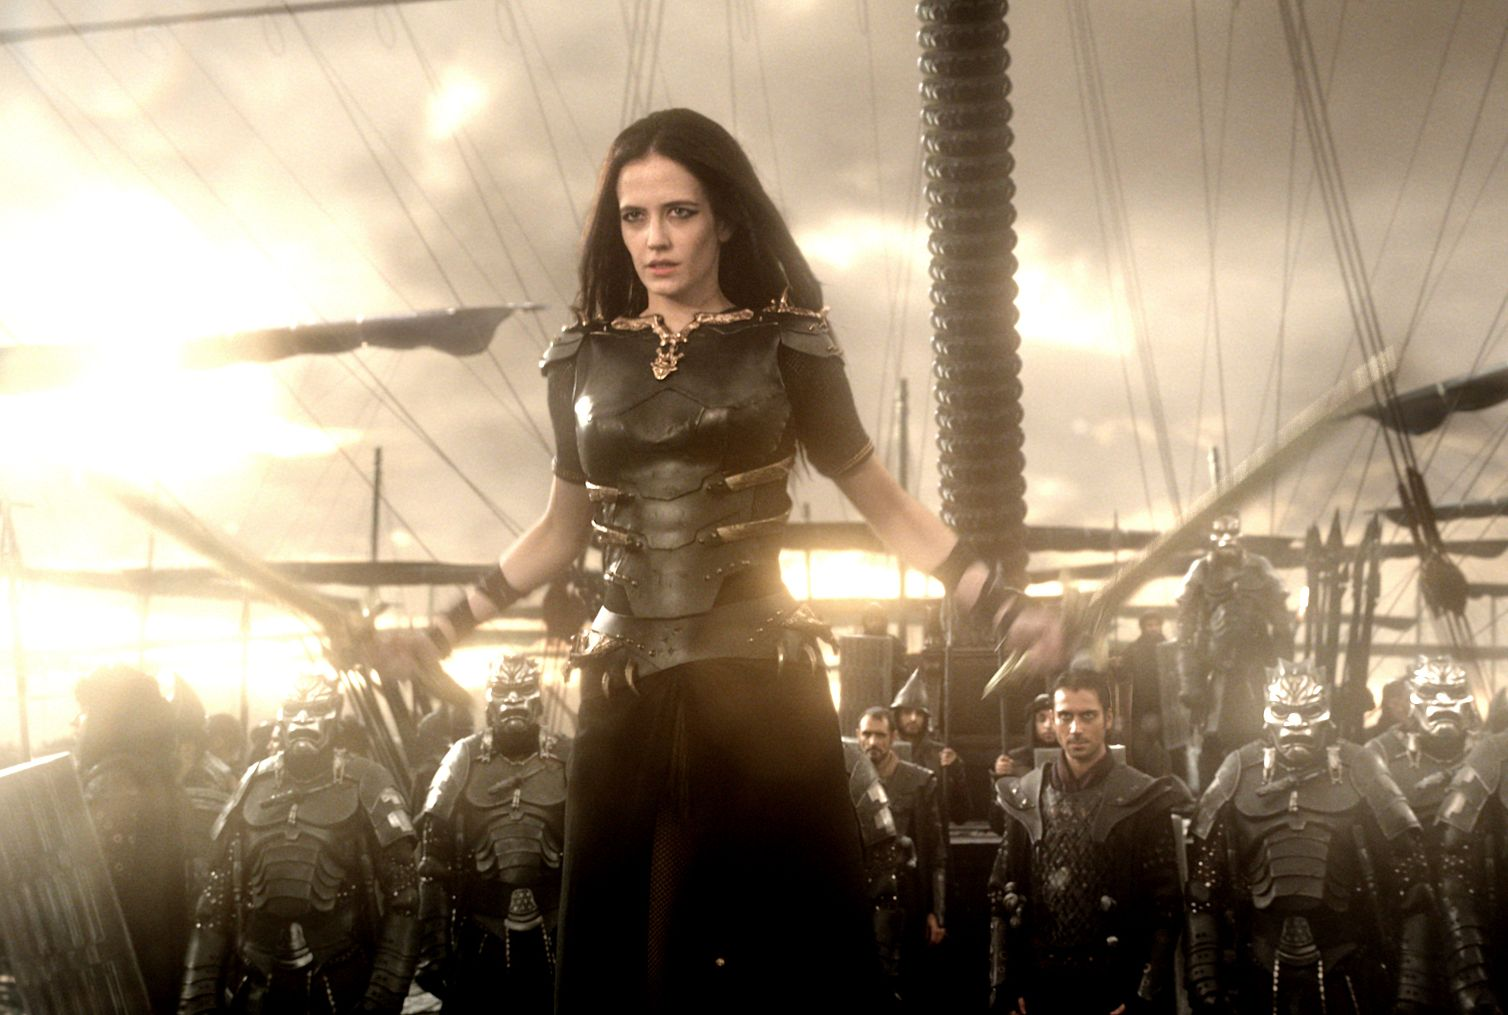 Eva Green as Artemisia leading an army in 300: Rise of an Em